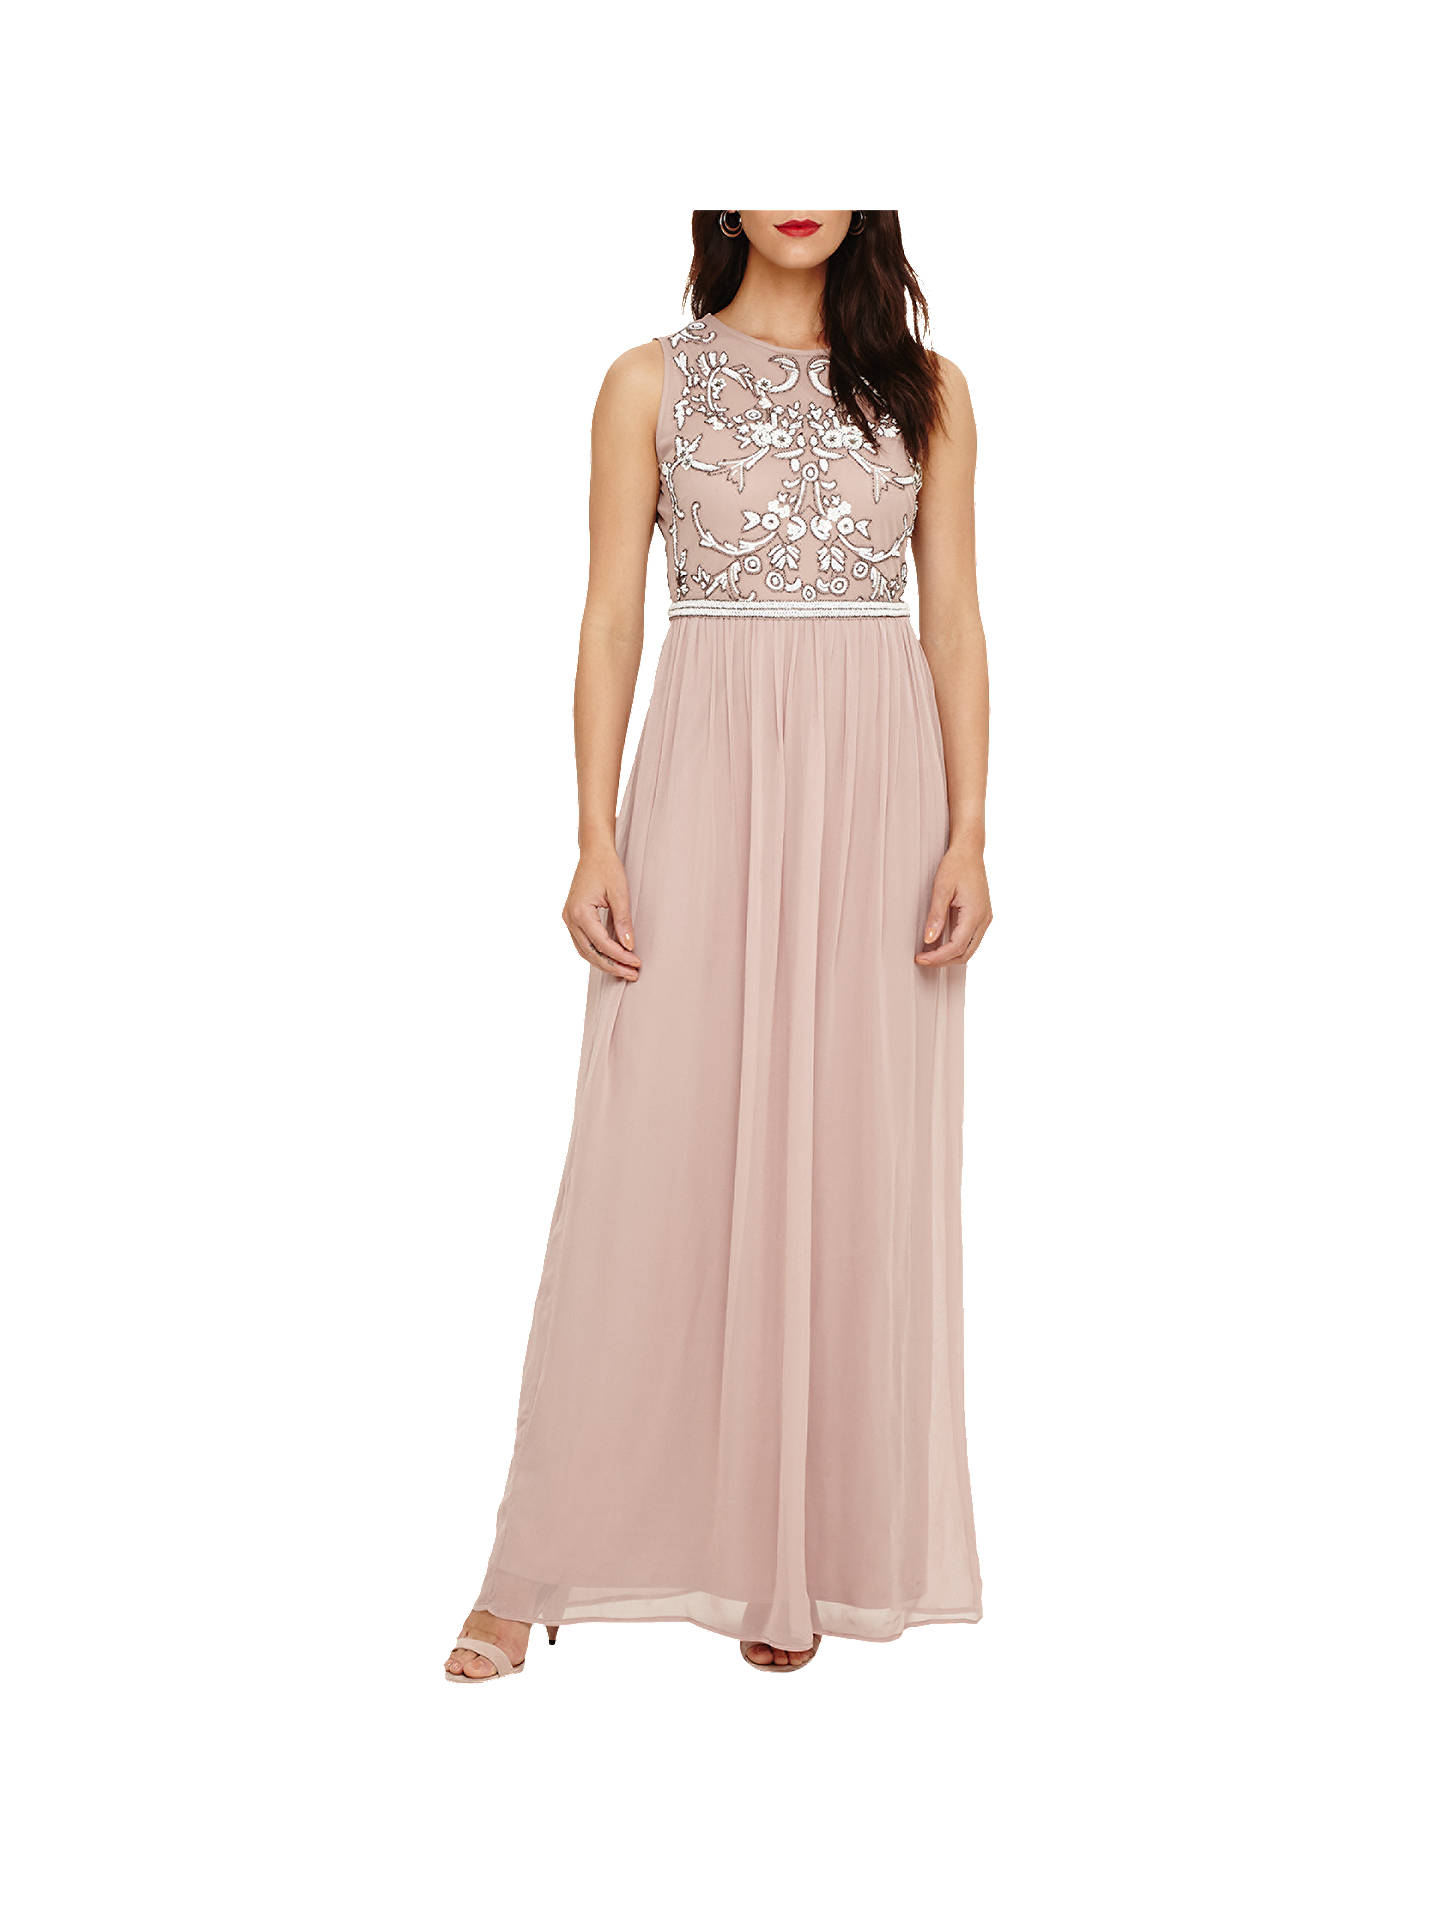 0eaac822f2c Phase Eight Collection 8 Zahara Embellished Dress